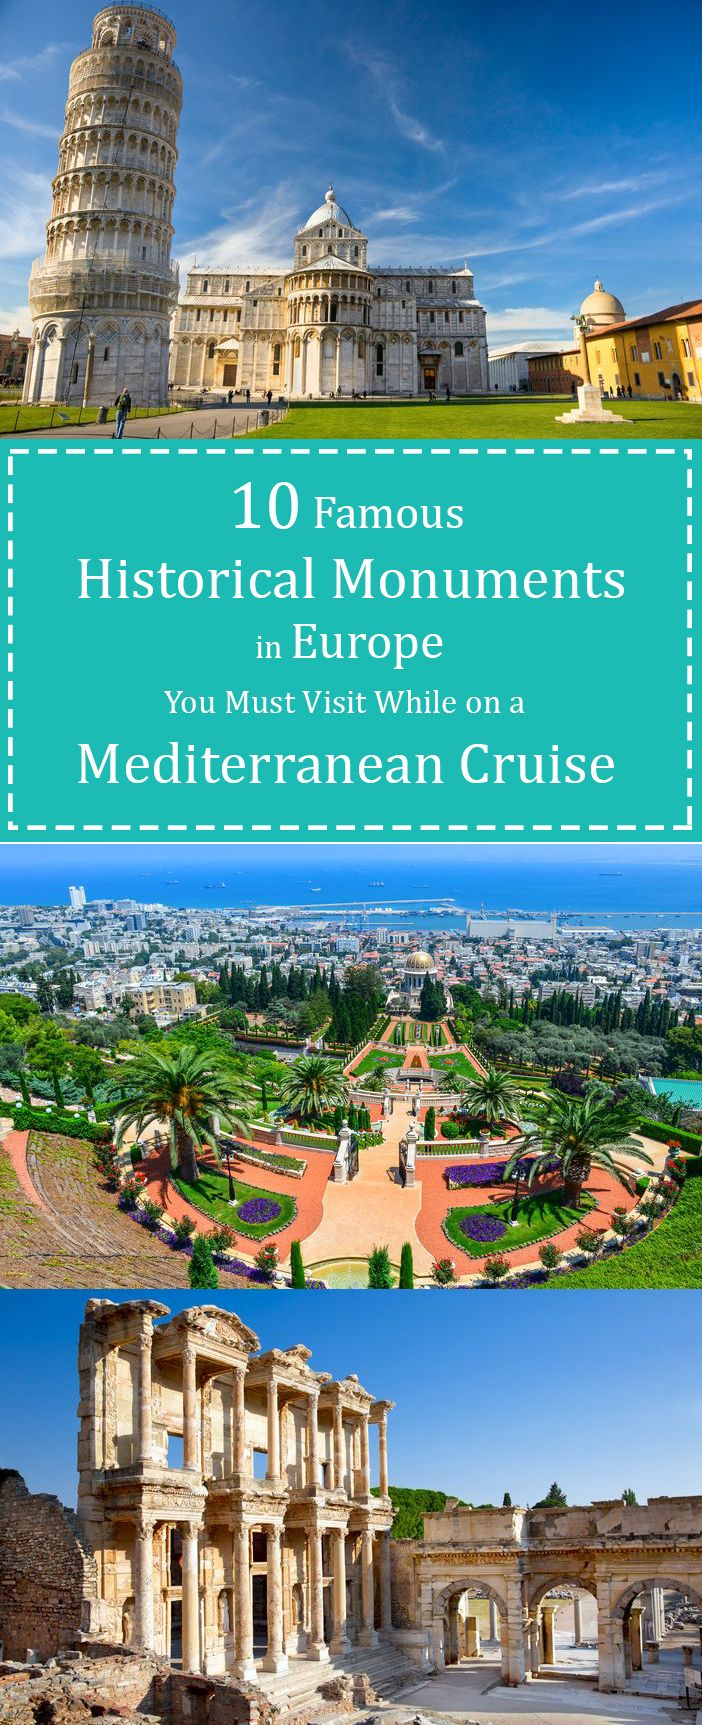 The evolution of culture in Europe has followed some diverse yet clearly defined paths. Nothing paints this more clearly that the many famous historical monuments in Europe. Some of these, especially the important ones, also have a connection with the historical events that shaped Europe. Ten of these that you might want to visit include;